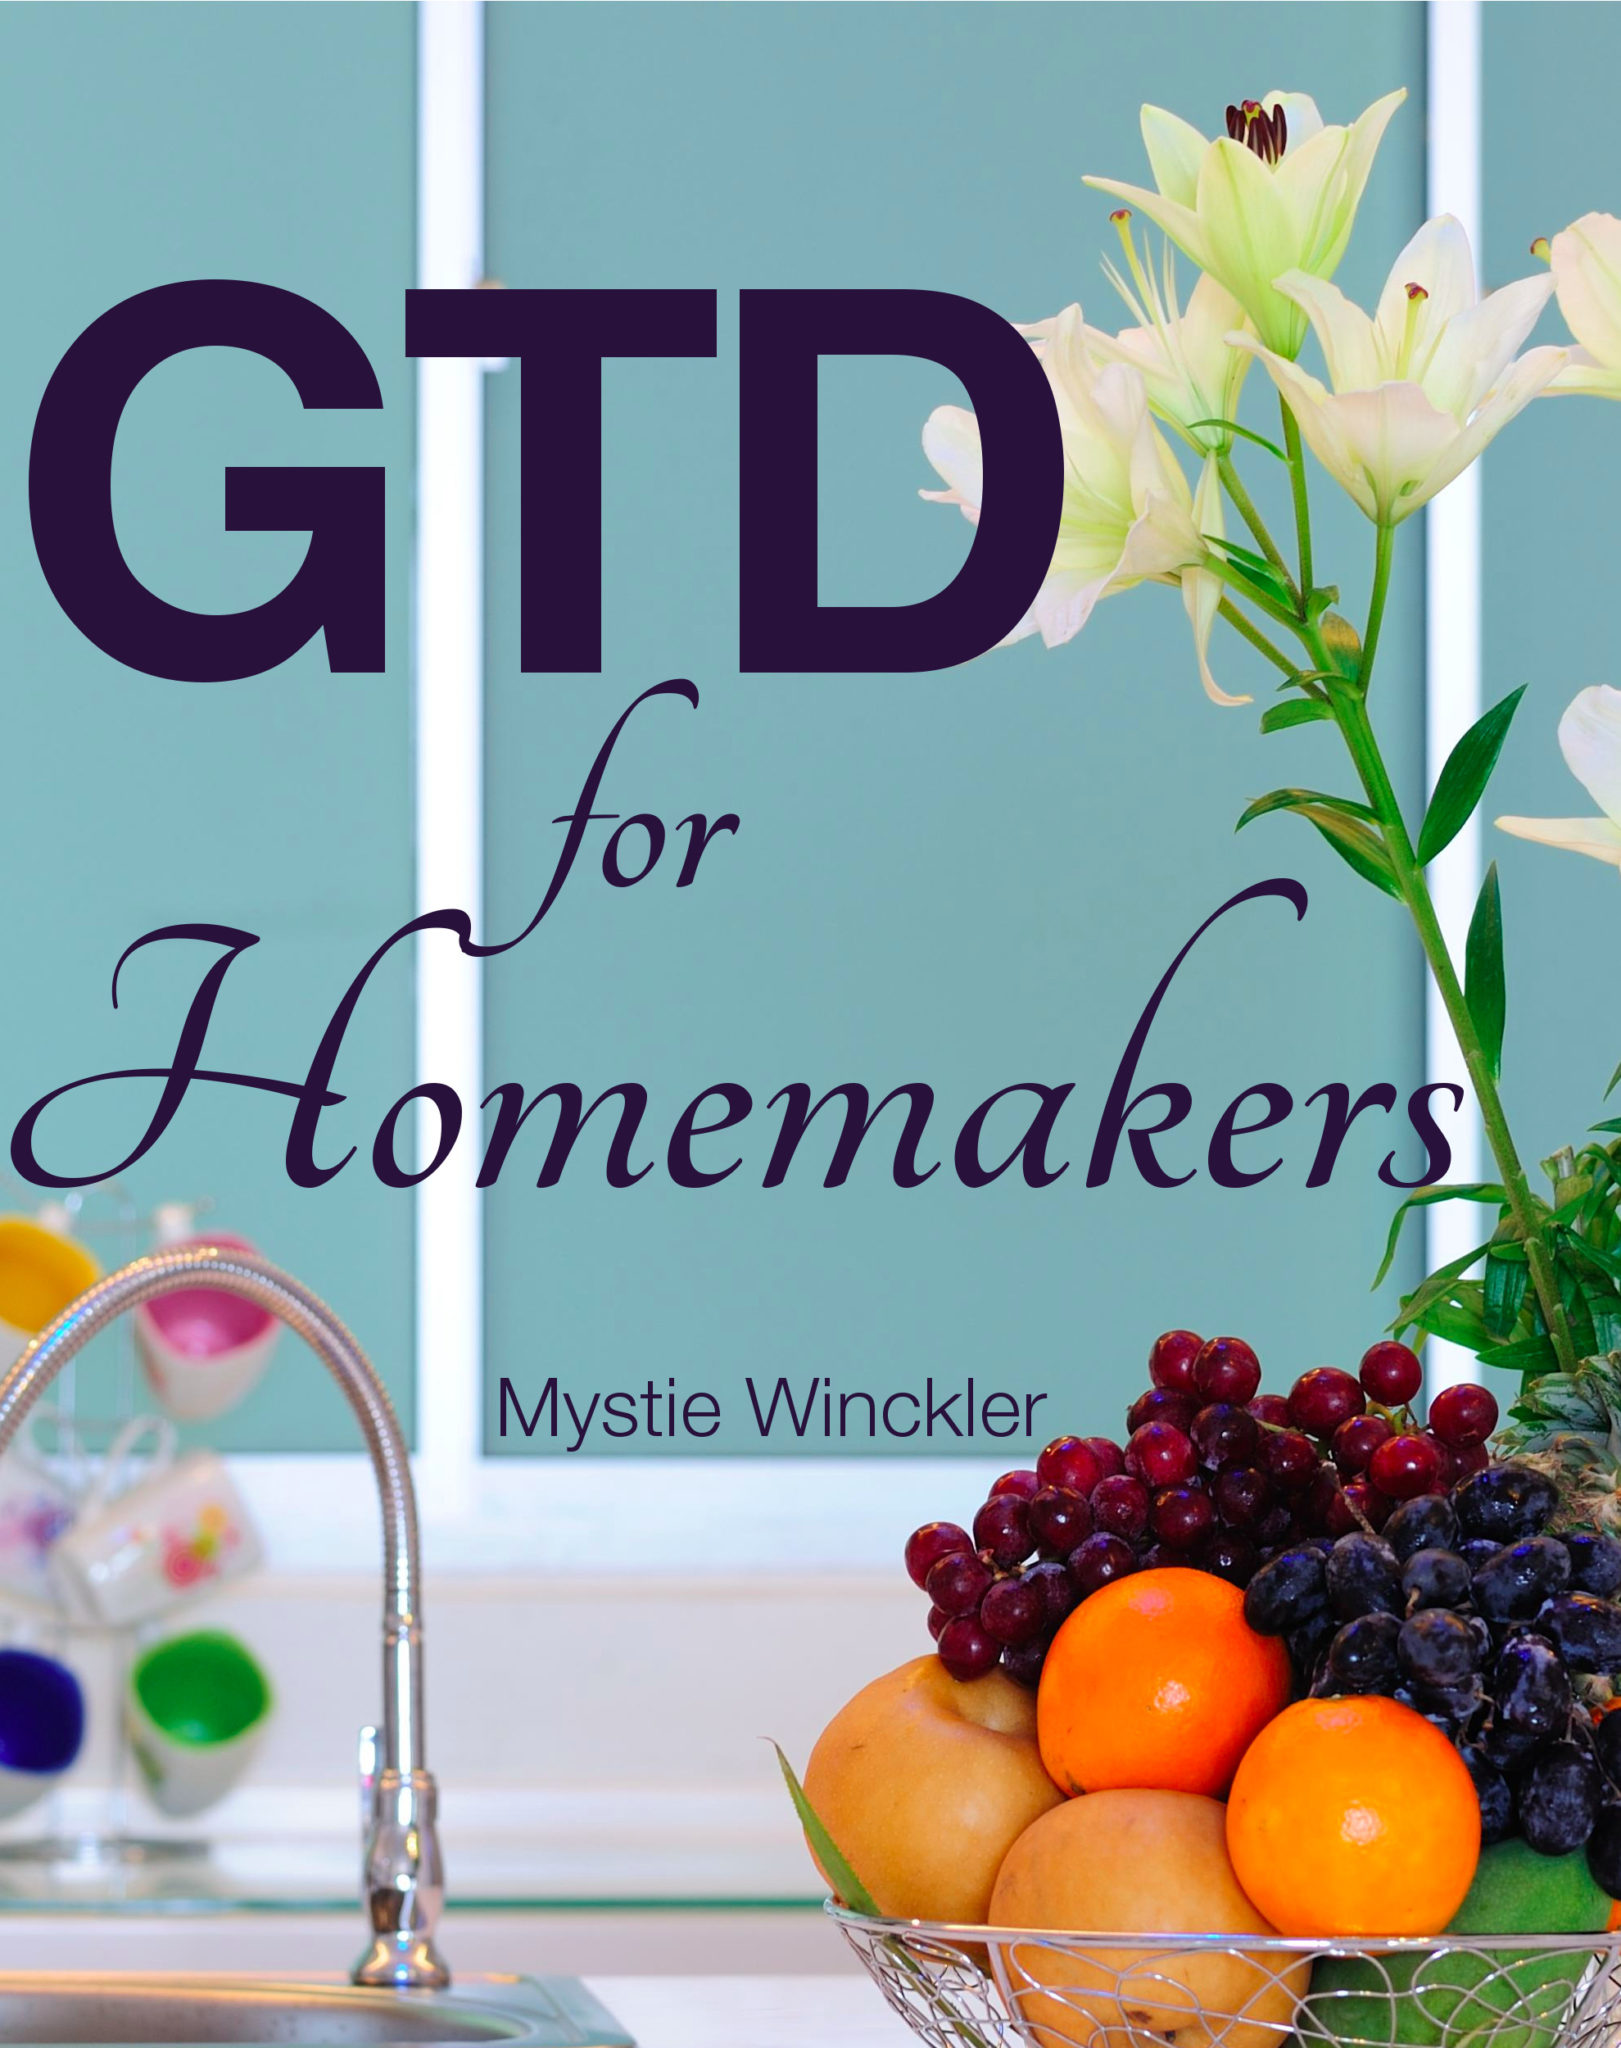 if anybody needs to get things done, it's homemakers. Learn to streamline processes, alleviate stress, and increase productivity.